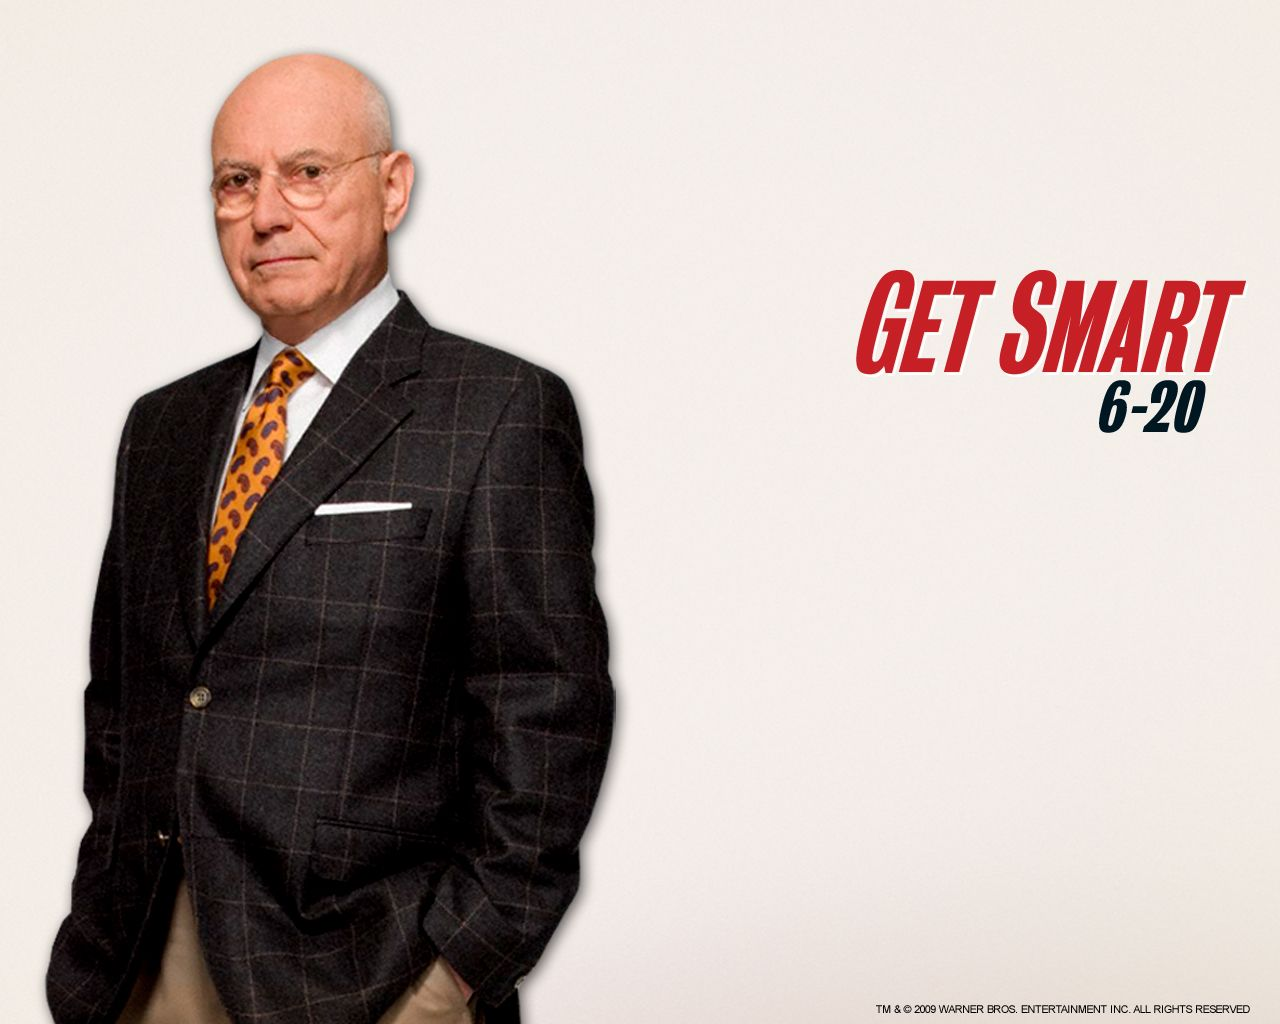 Watch Streaming HD Get Smart, starring Steve Carell, Anne